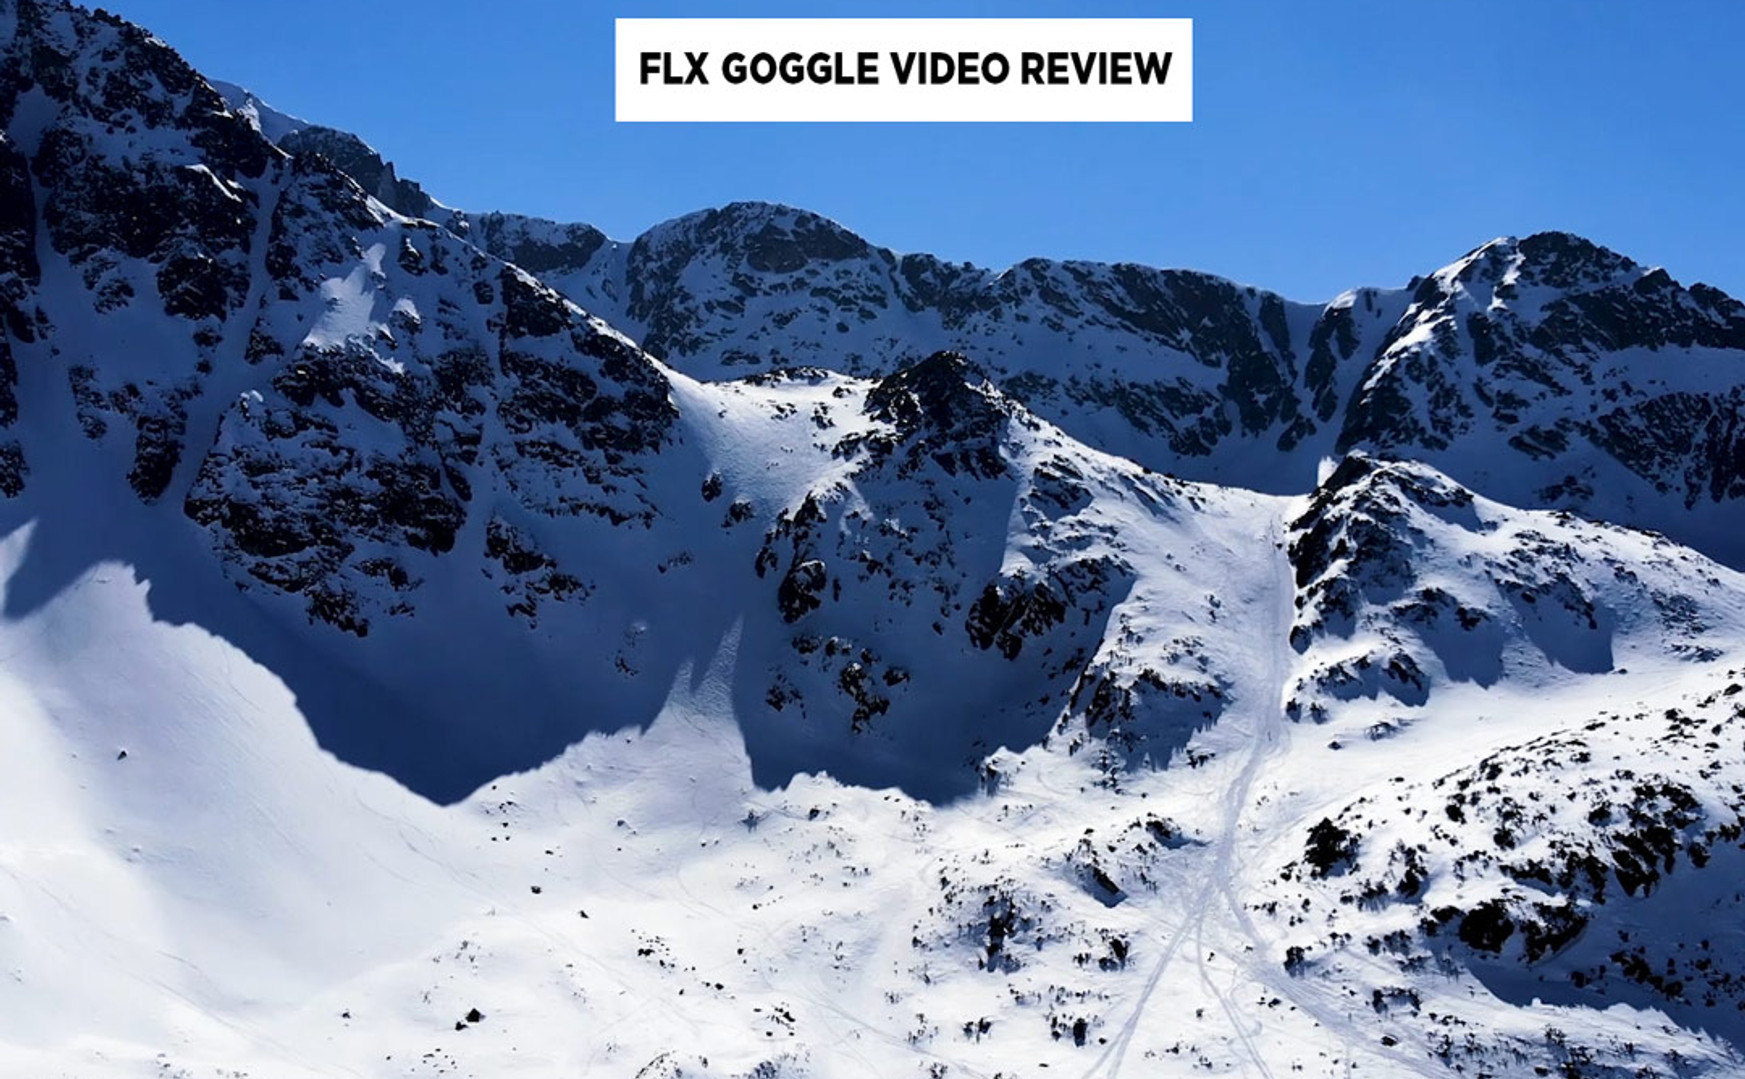 FLX Video Review